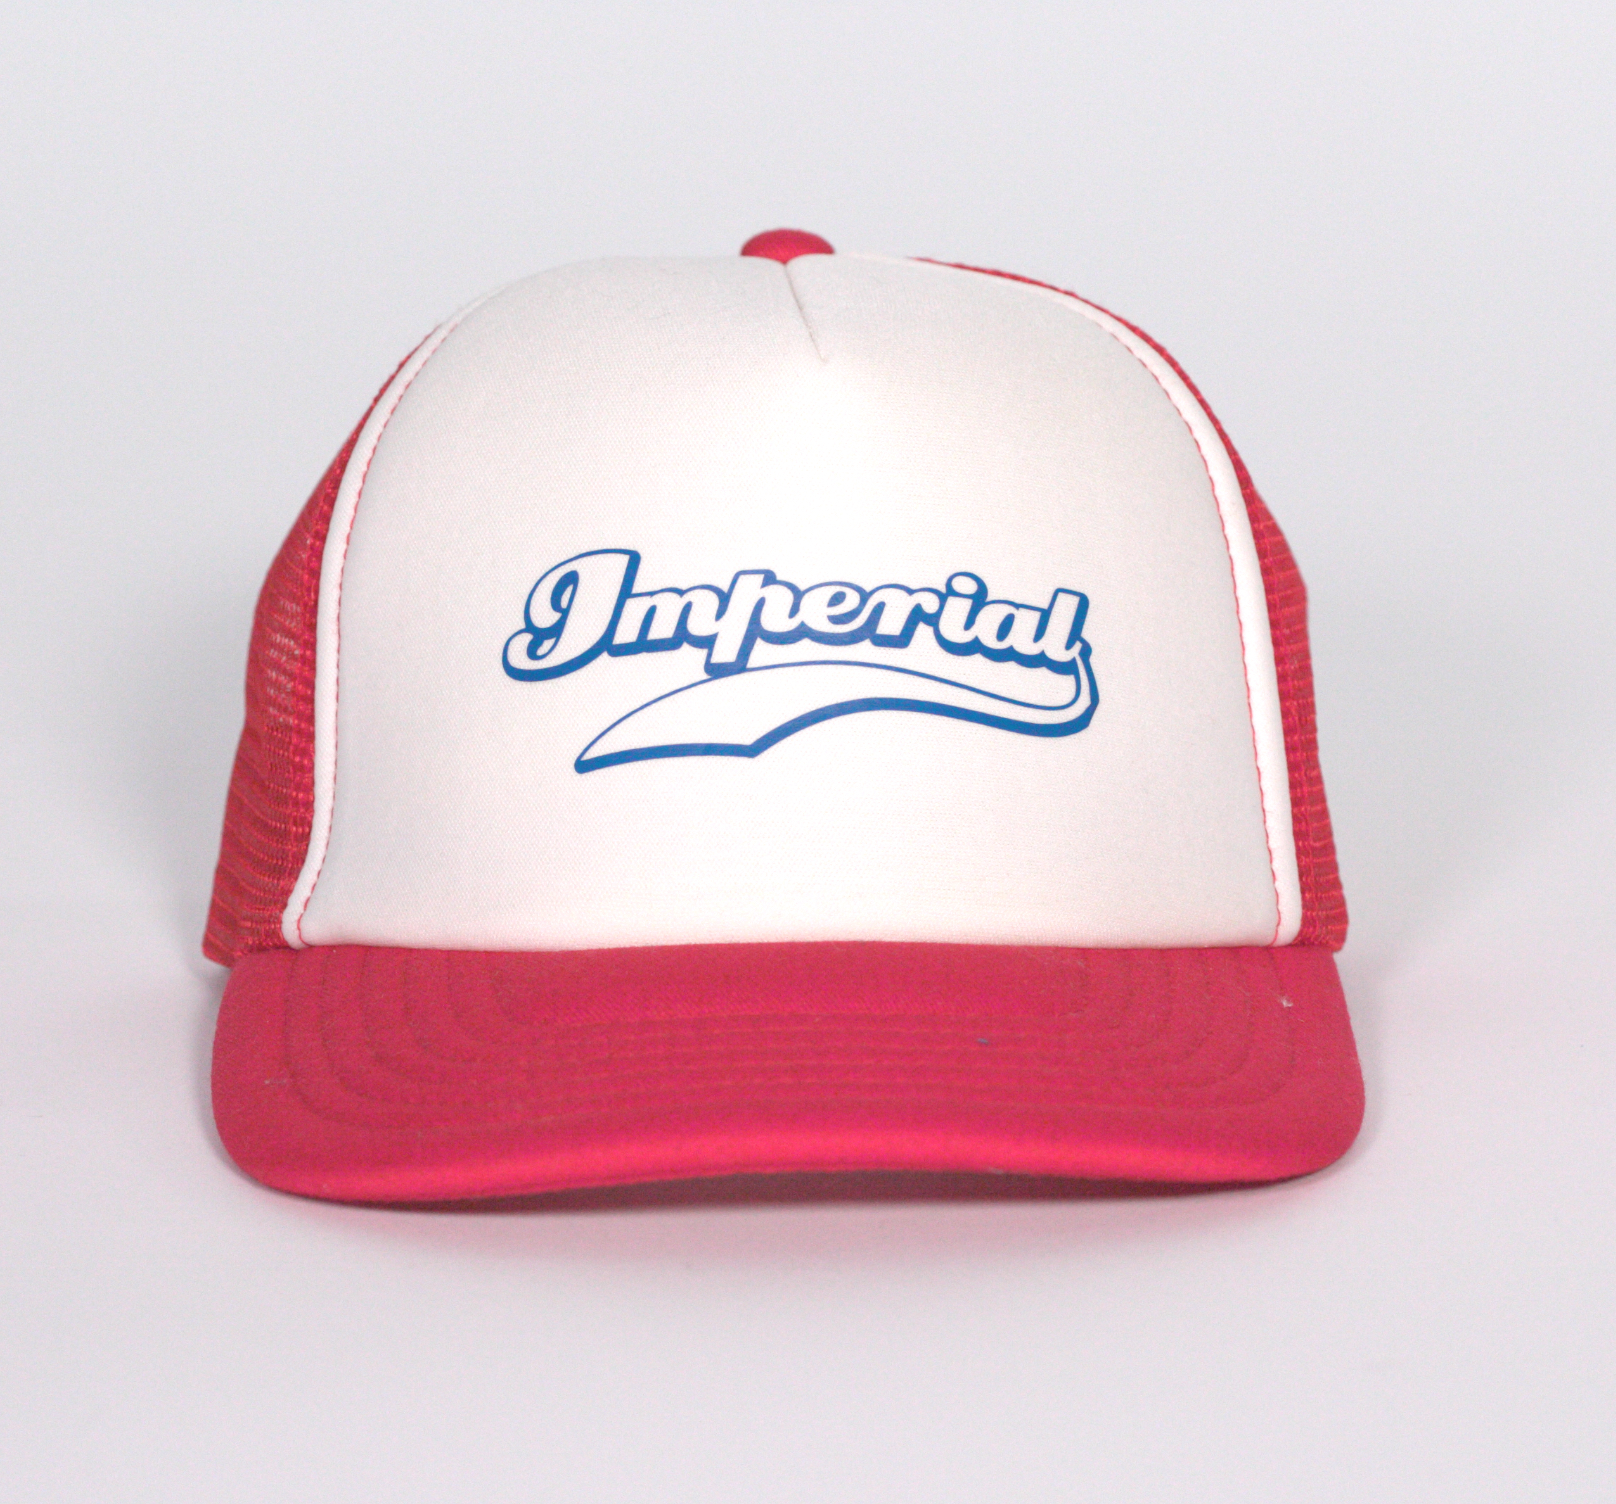 Imperial Kids Trucker Cap in Red